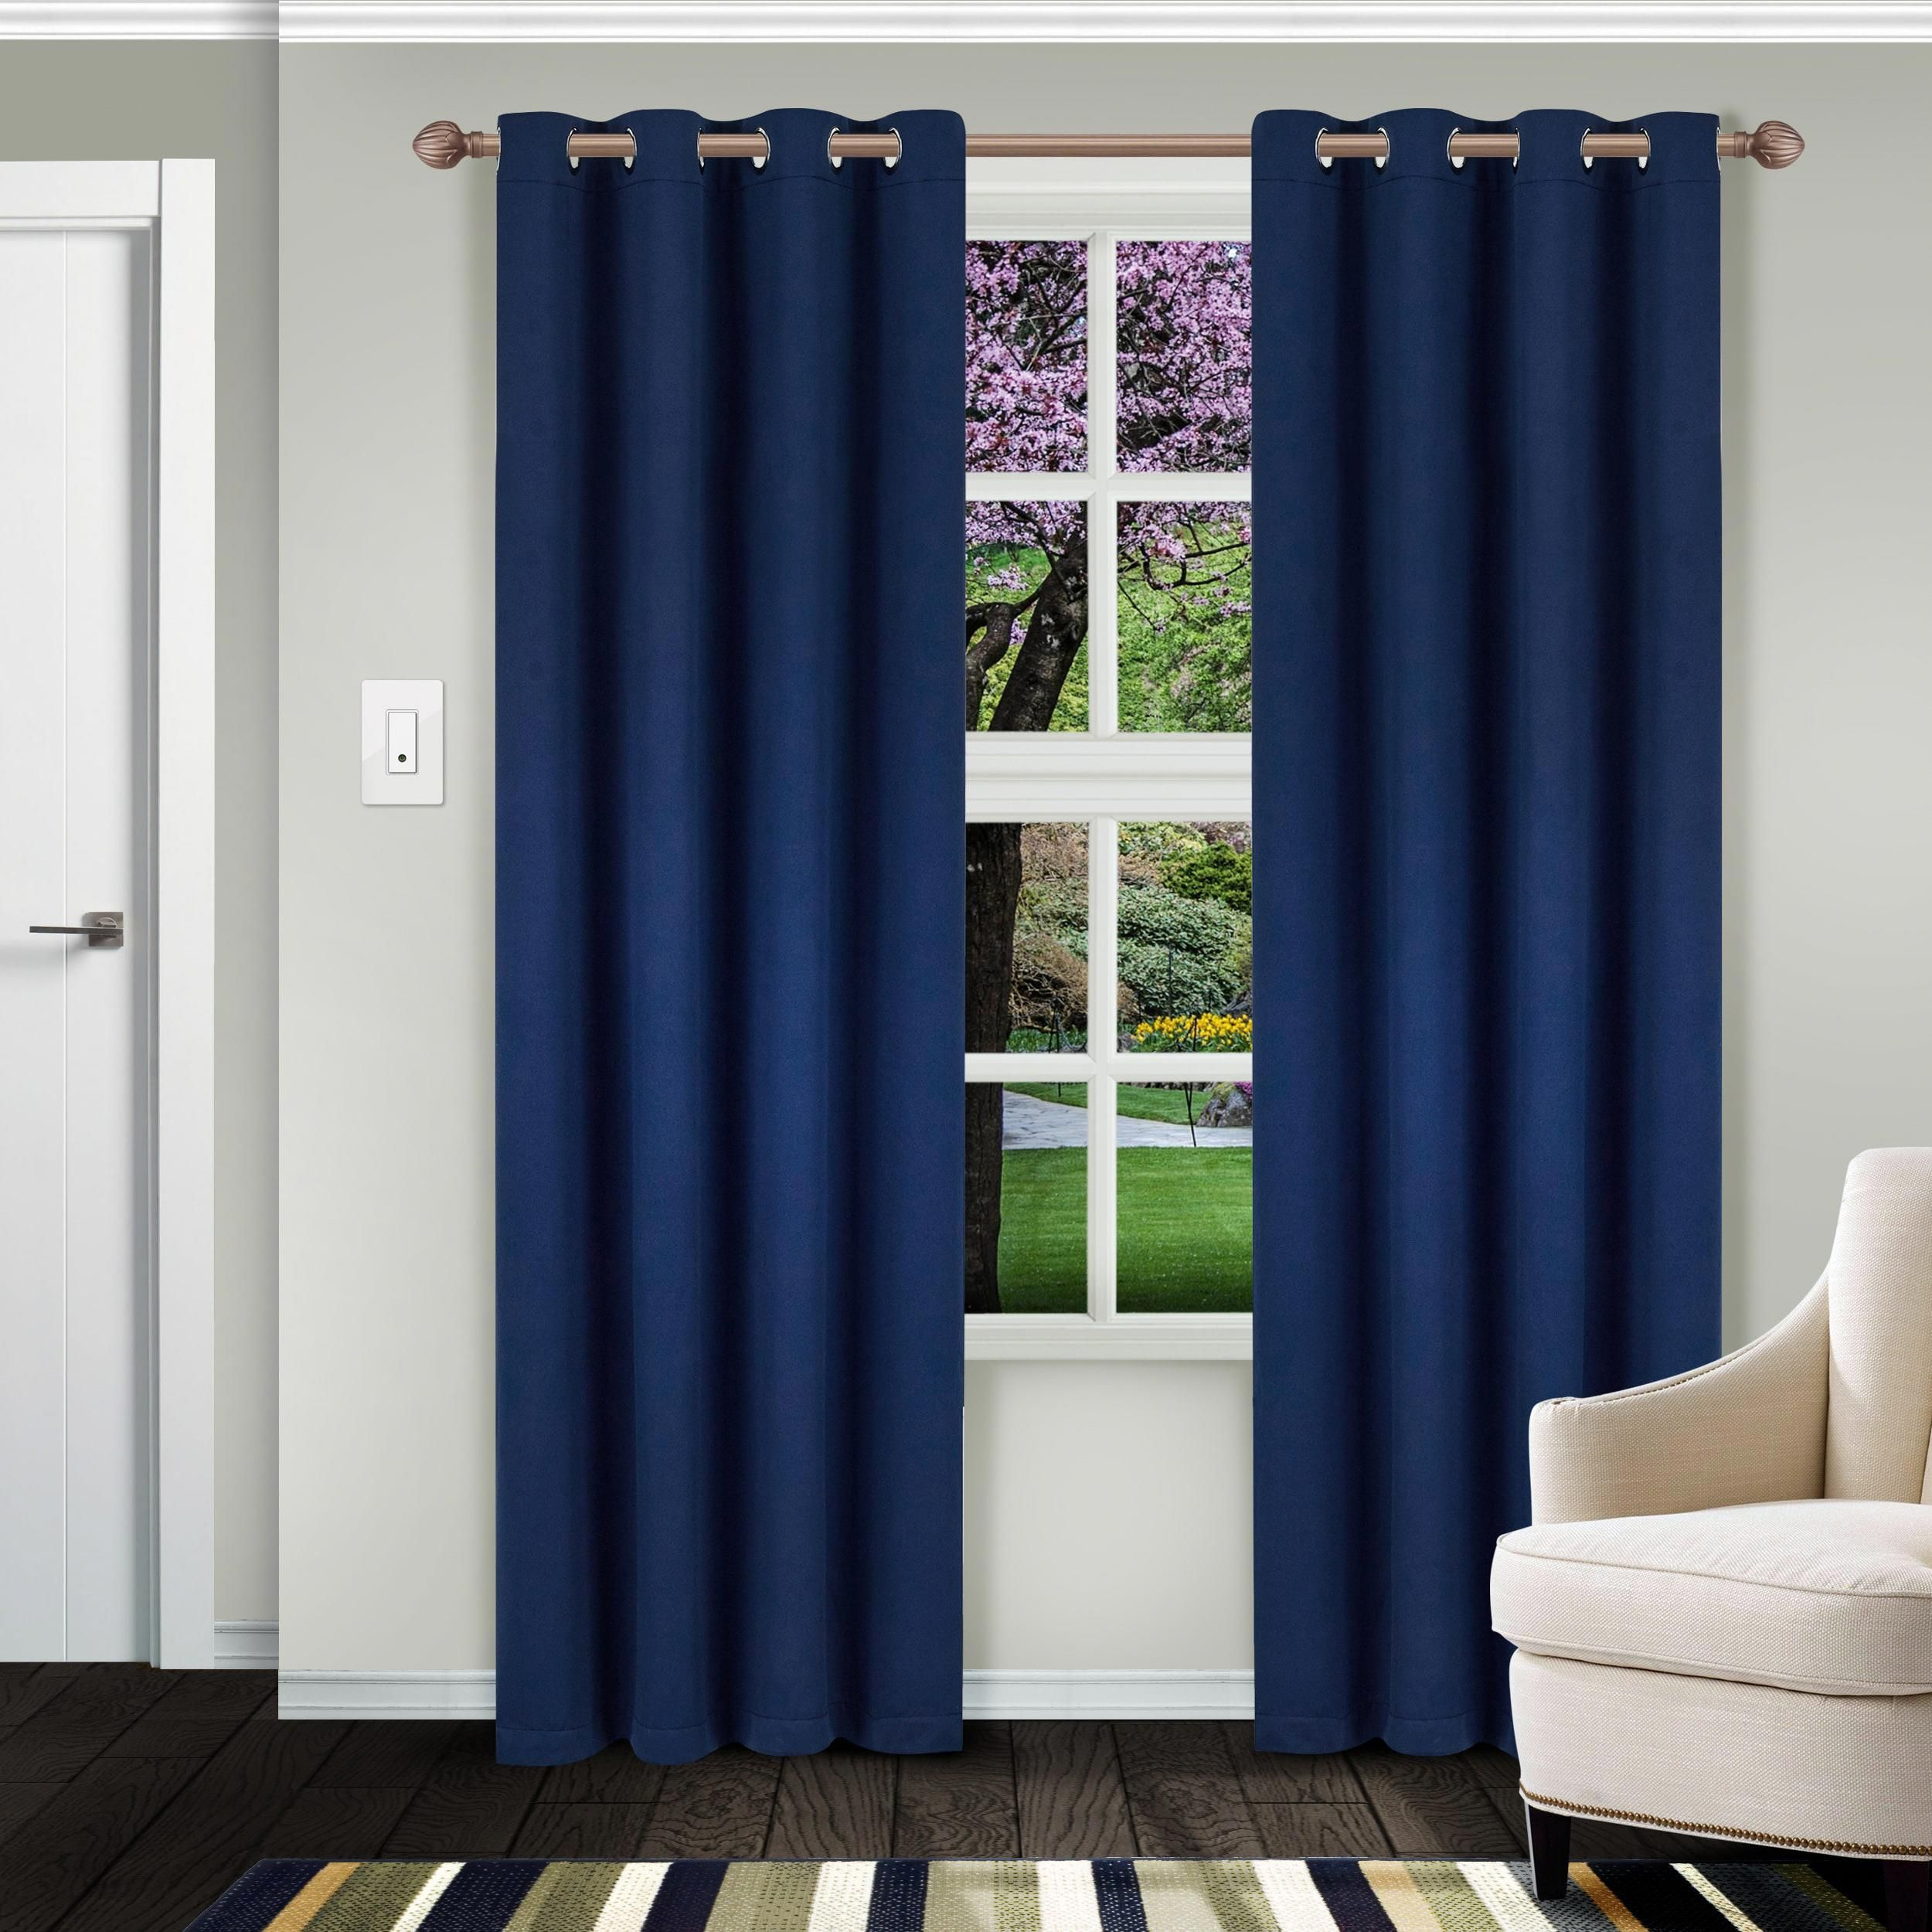 Superior Solid Insulated Thermal Blackout Grommet Curtain Panel